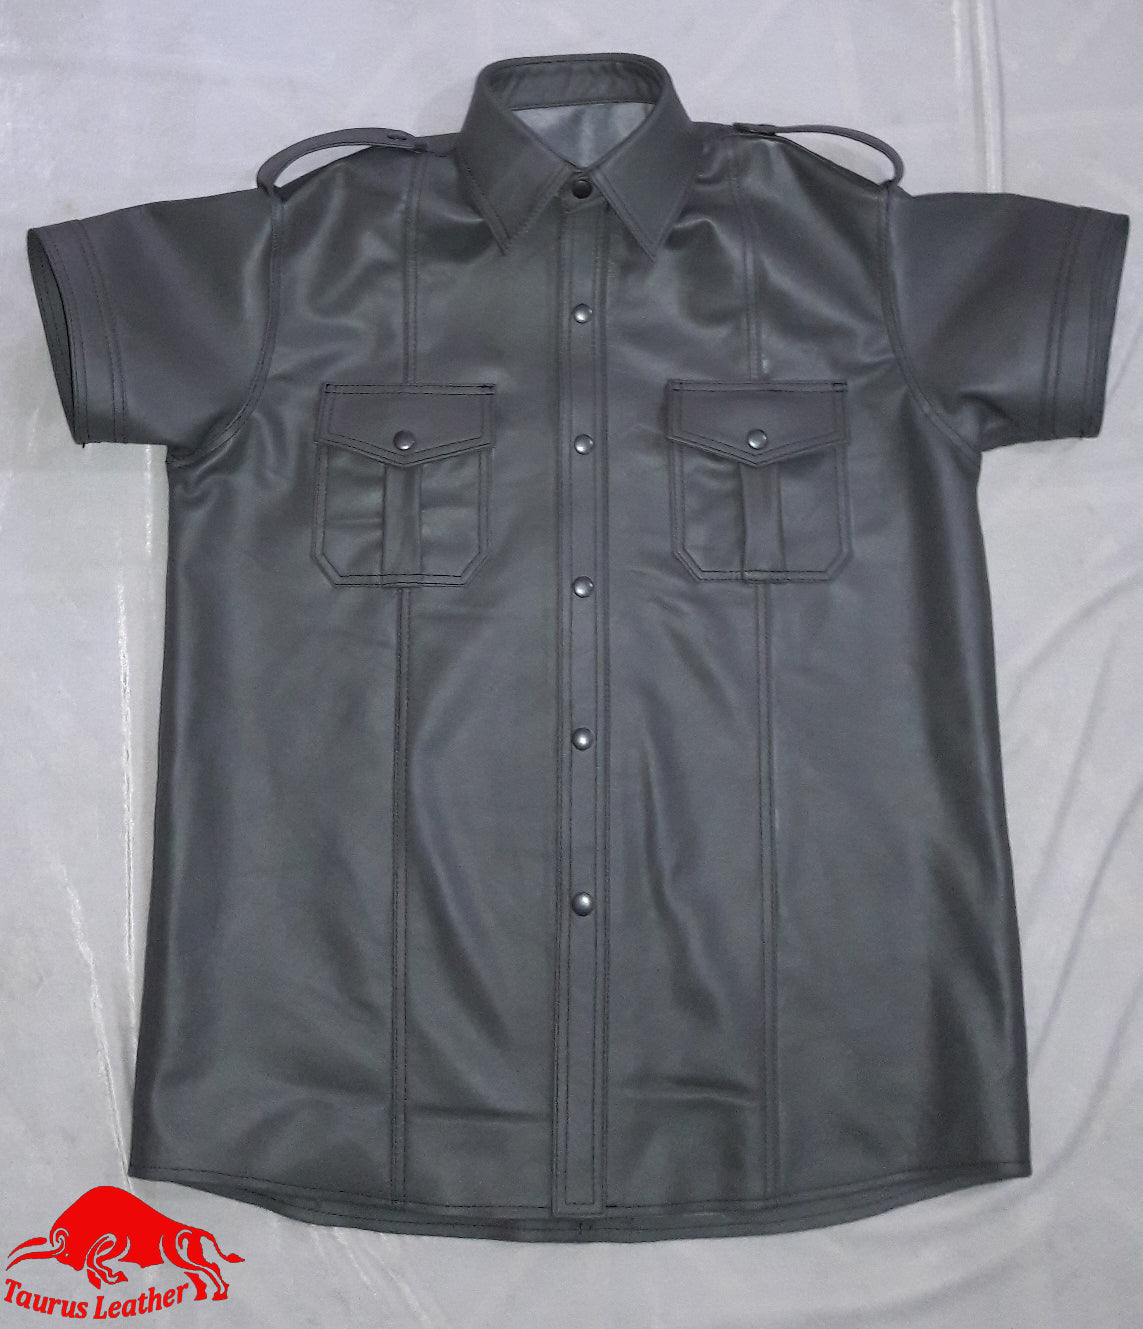 TAURUS LEATHER Silver Grey Sheep Leather Shirt